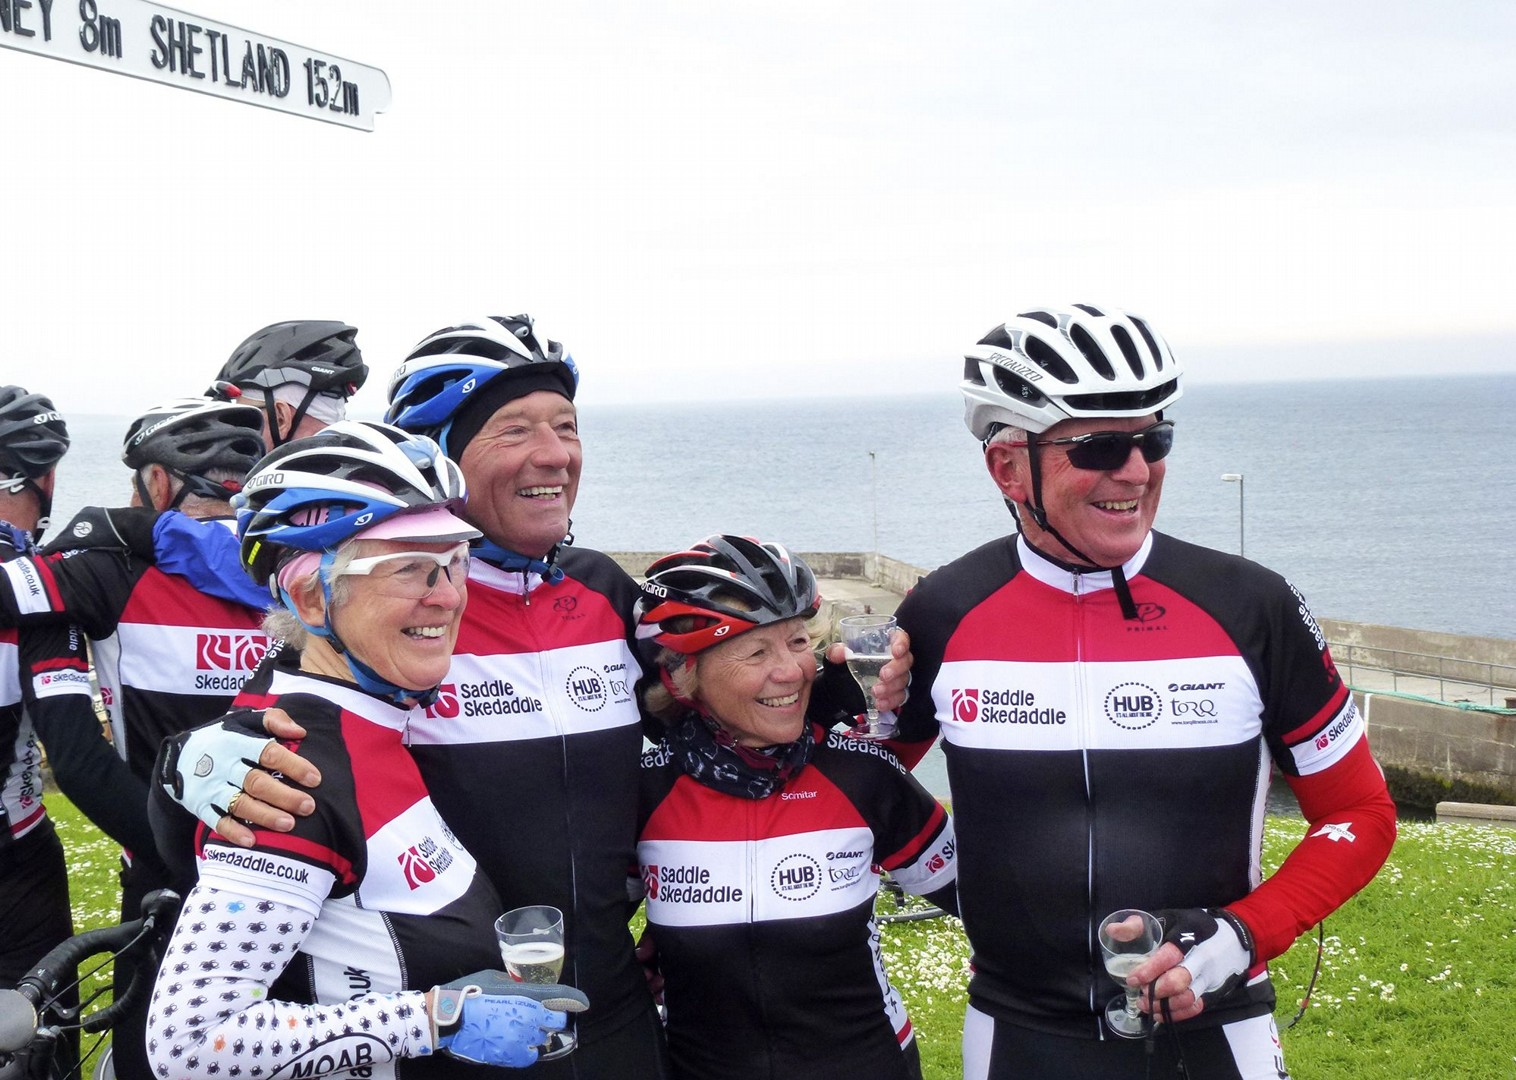 cycling-holiday-sustrans-lands-end-to-john-ogroats-lejog-group.jpg - UK - Land's End to John O'Groats Explorer (22 days) - Guided Cycling Holiday - Road Cycling